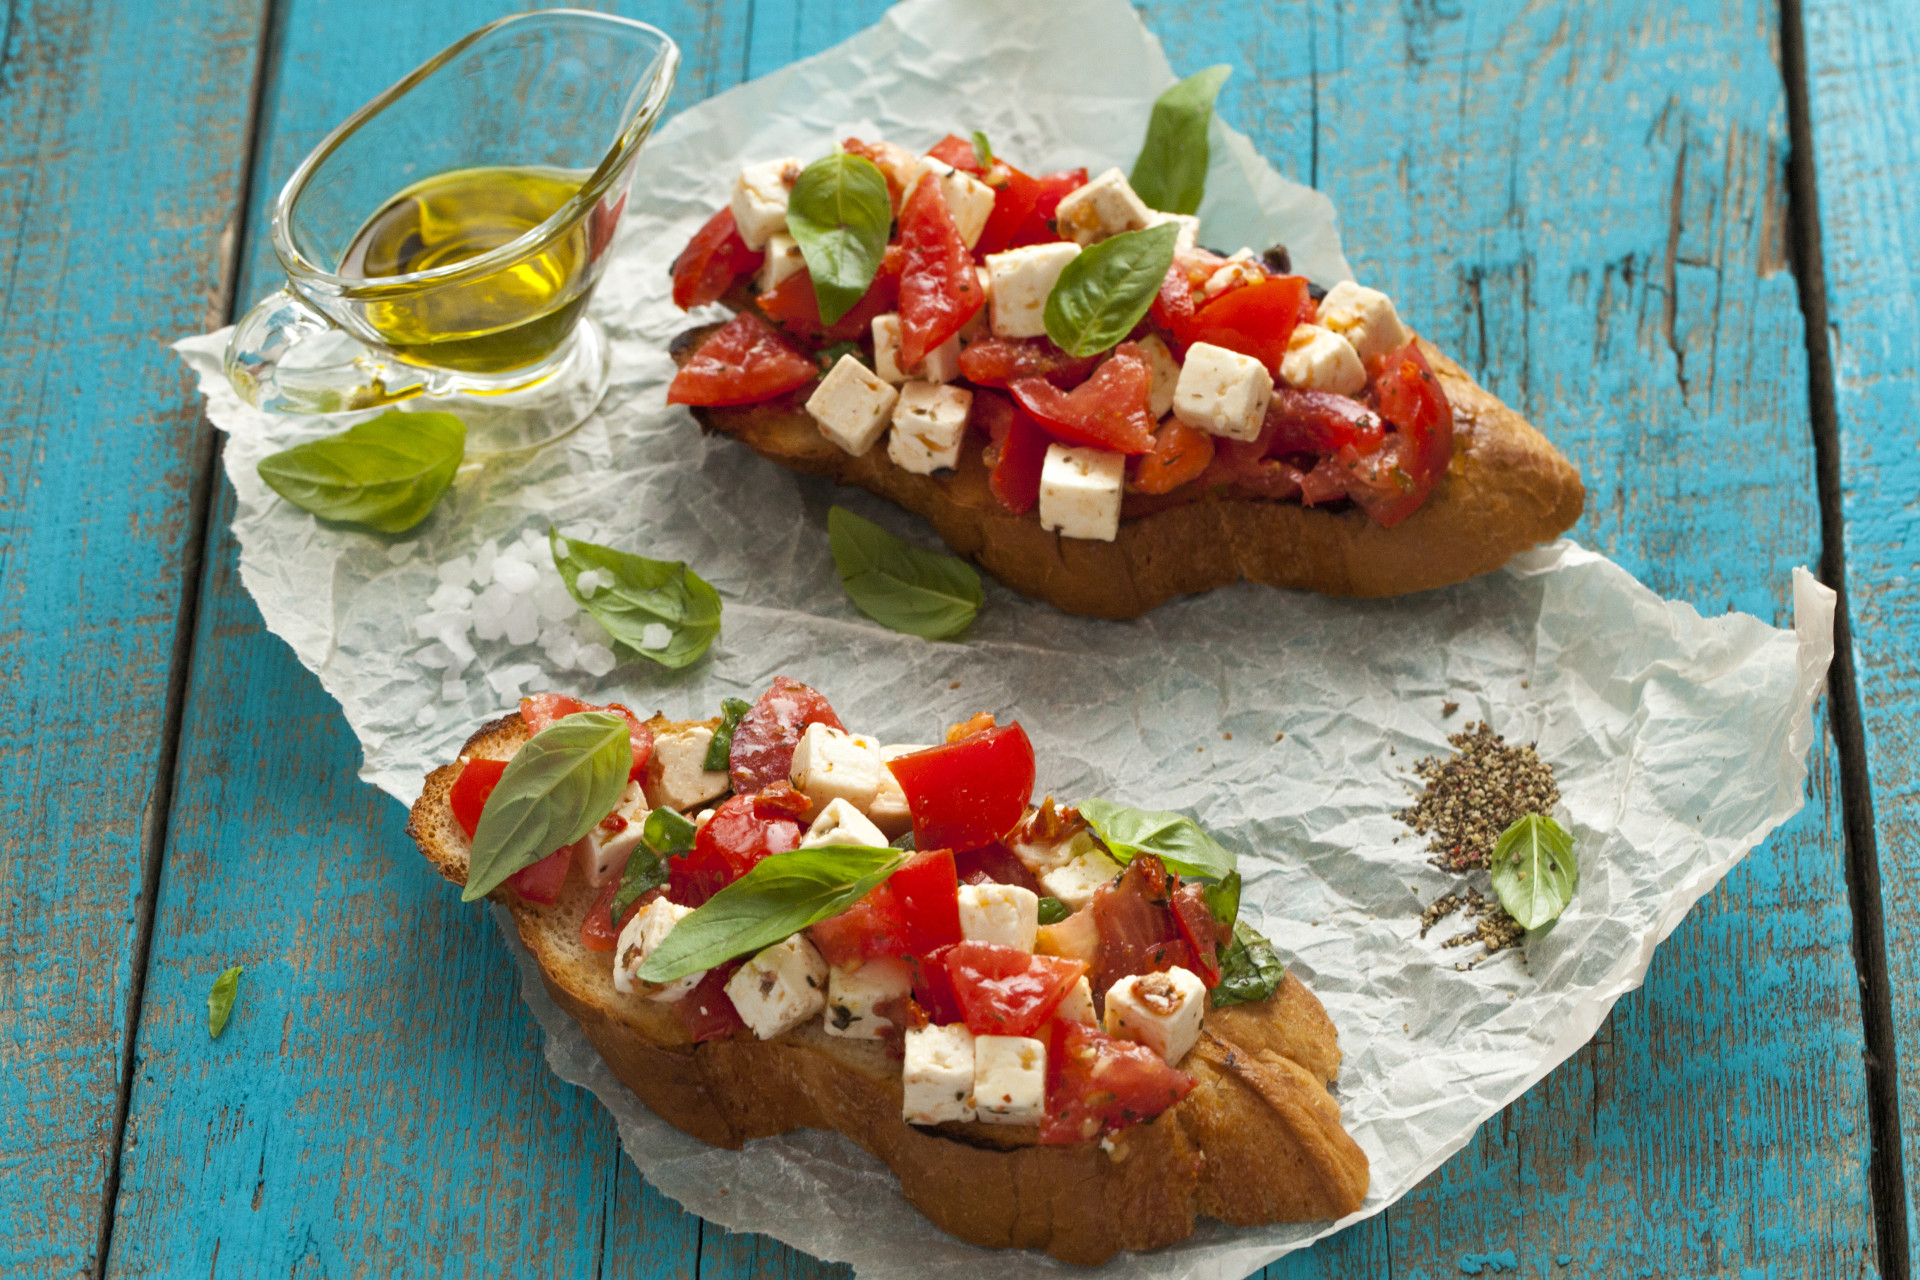 Sandwiches with tomatoes, feta cheese and basil